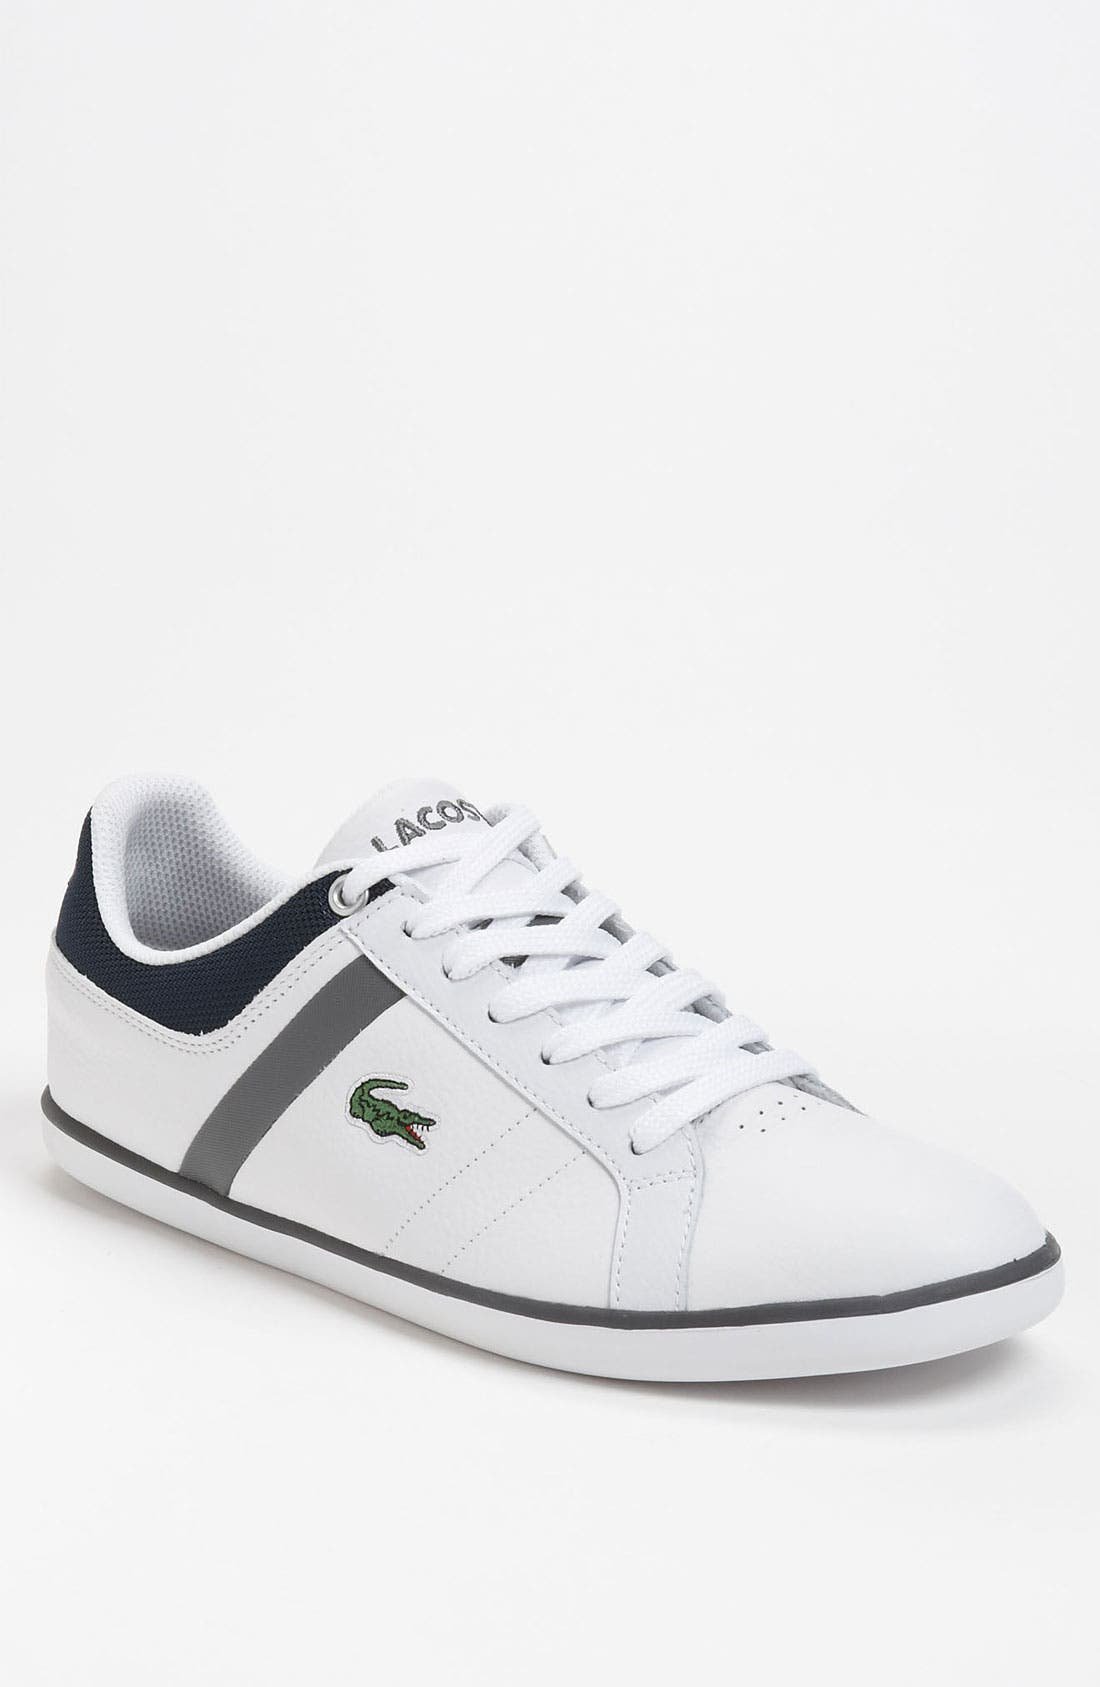 Alternate Image 1 Selected - Lacoste 'Evershot PS' Sneaker